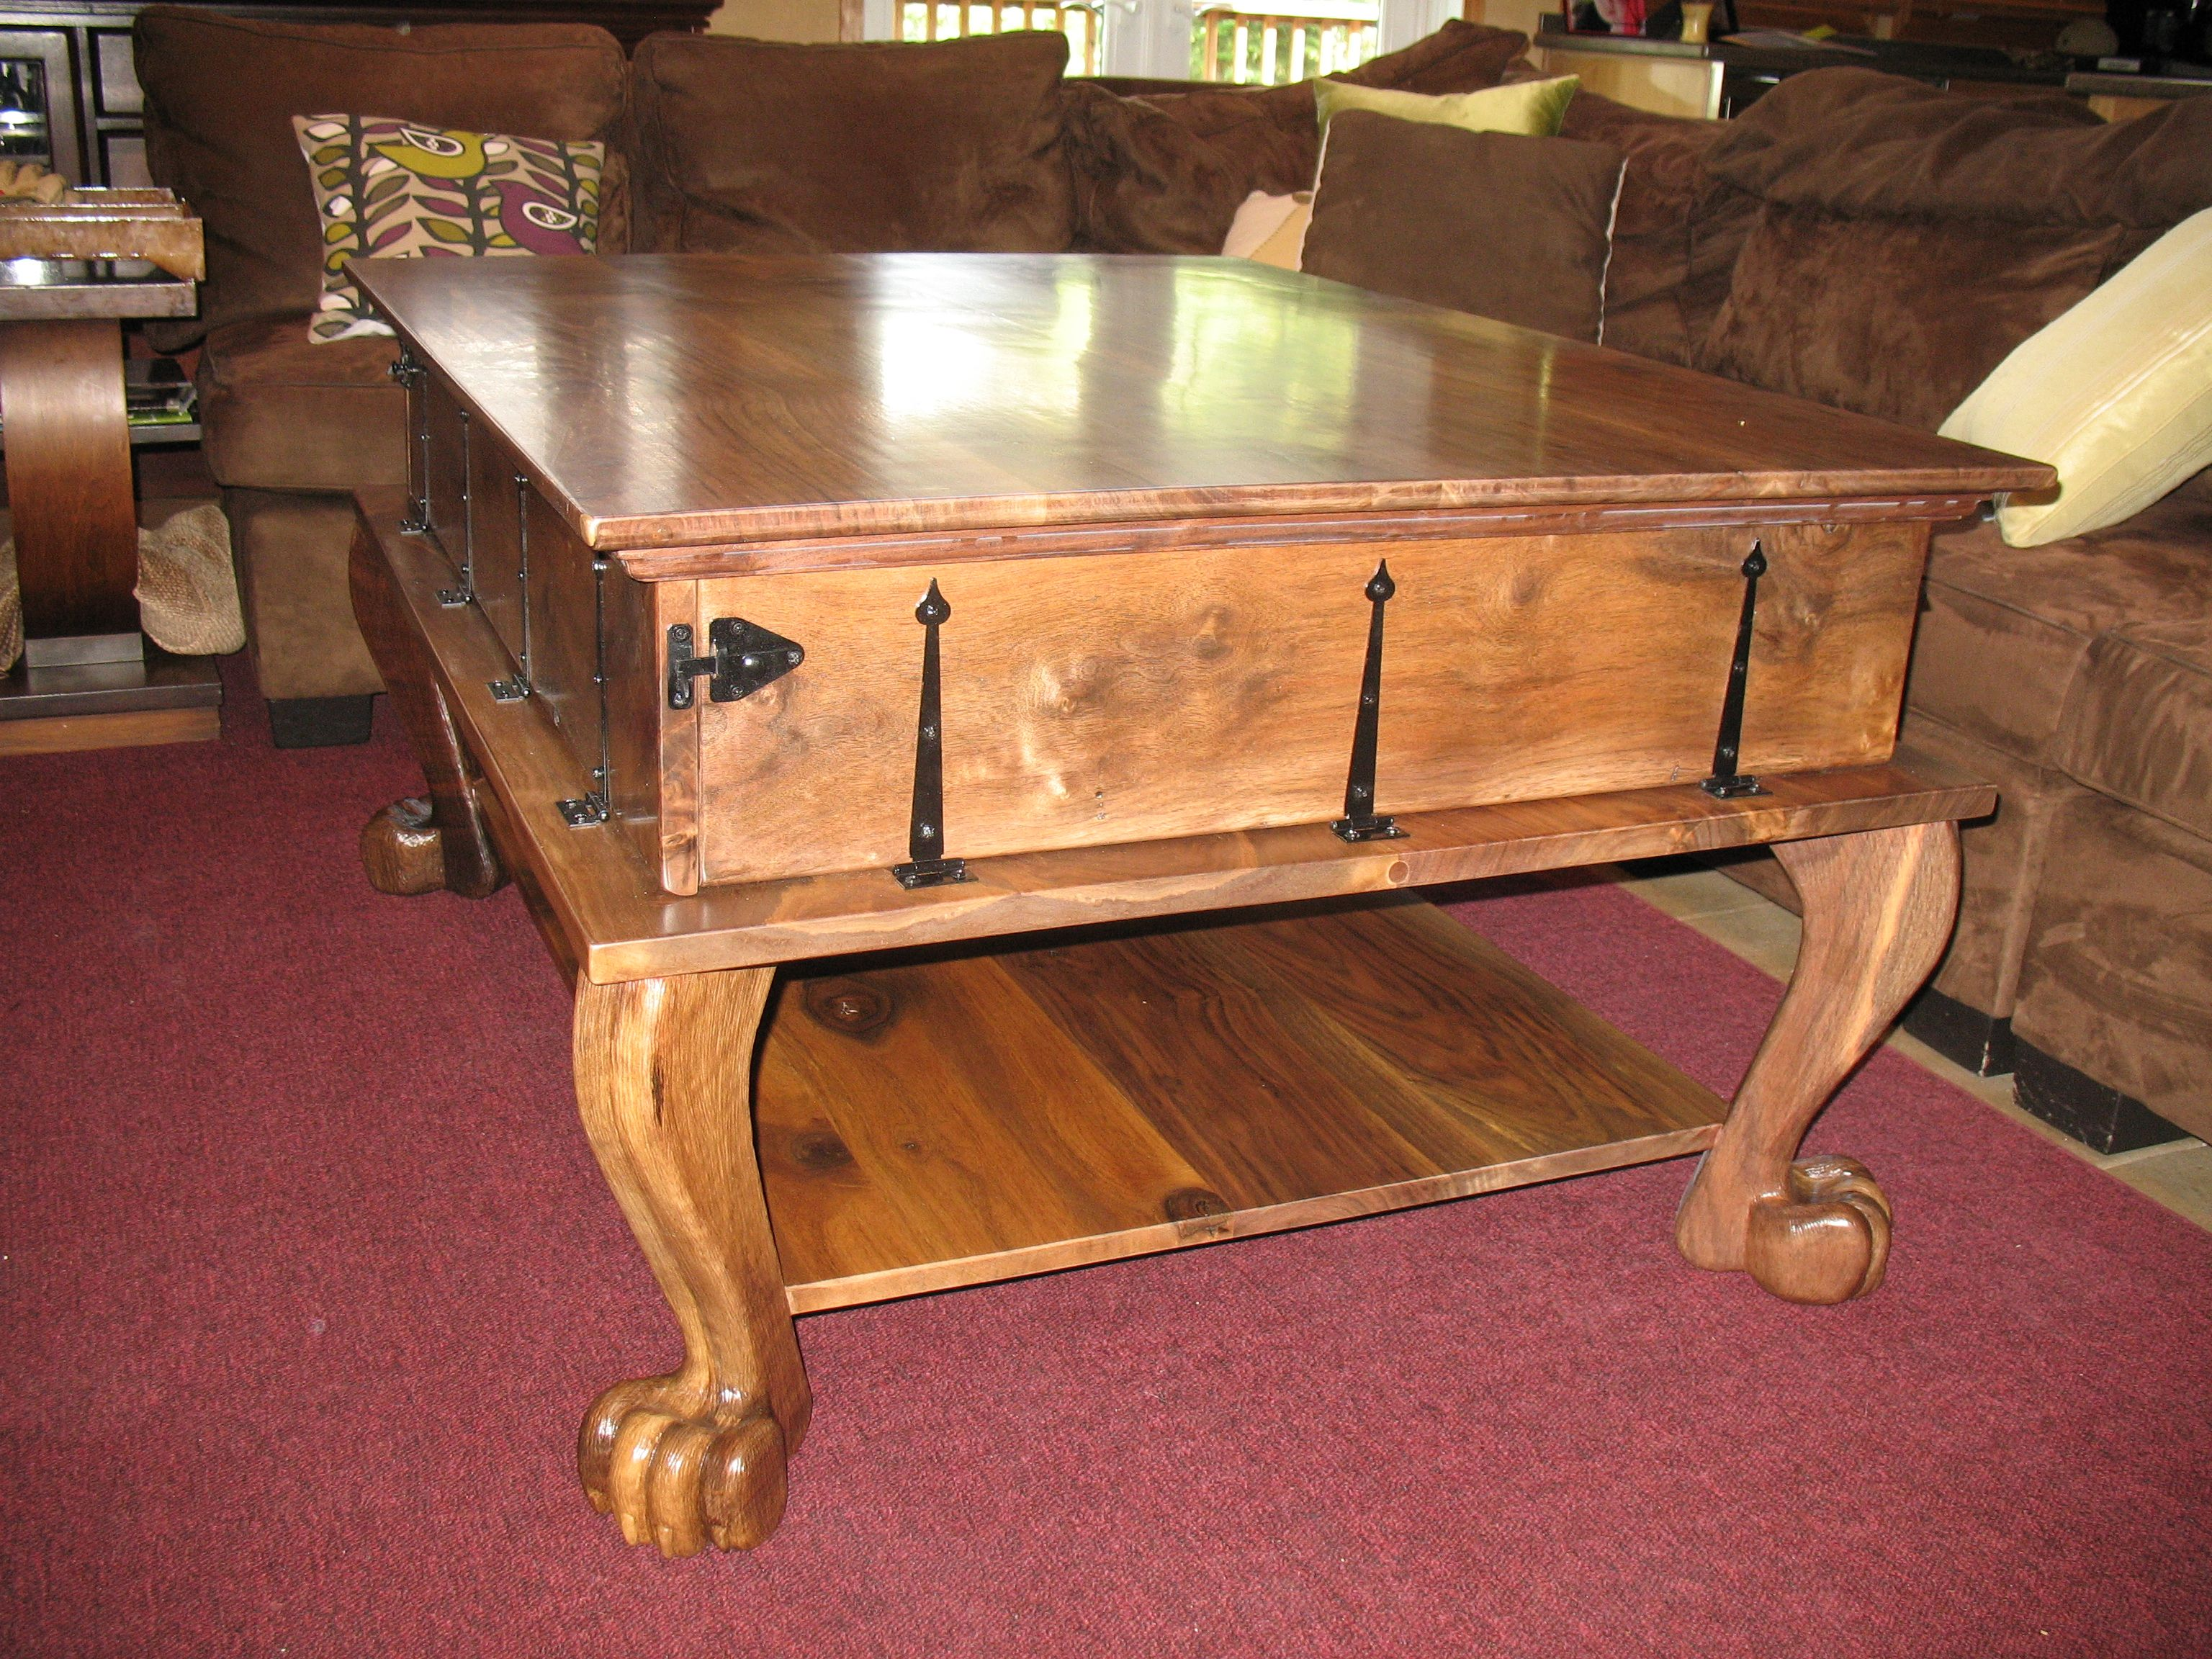 Claro walnut - 3 tier coffee table with removable top and folding sides SOLD